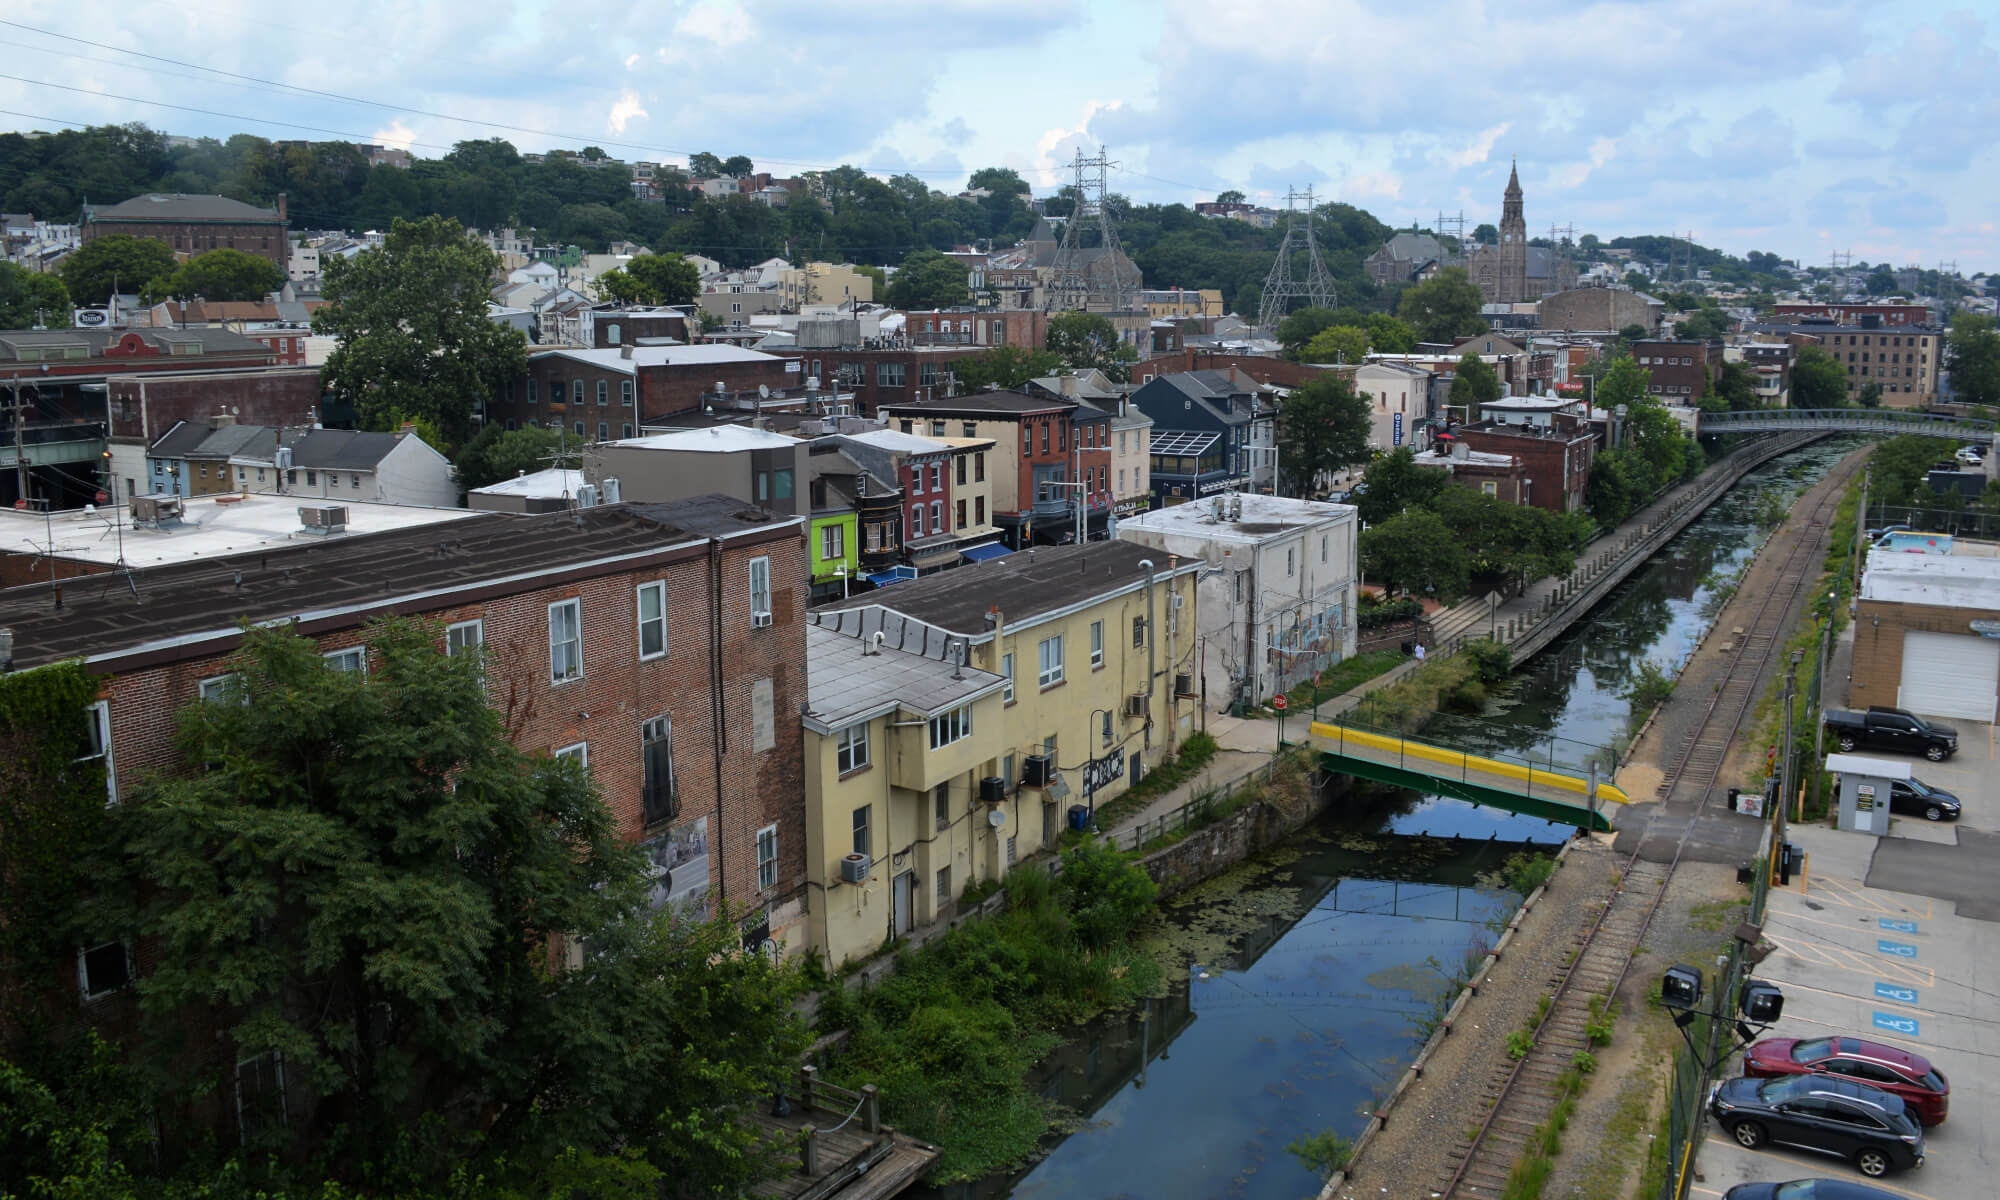 view of hills and houses in Manayunk, Philadelphia